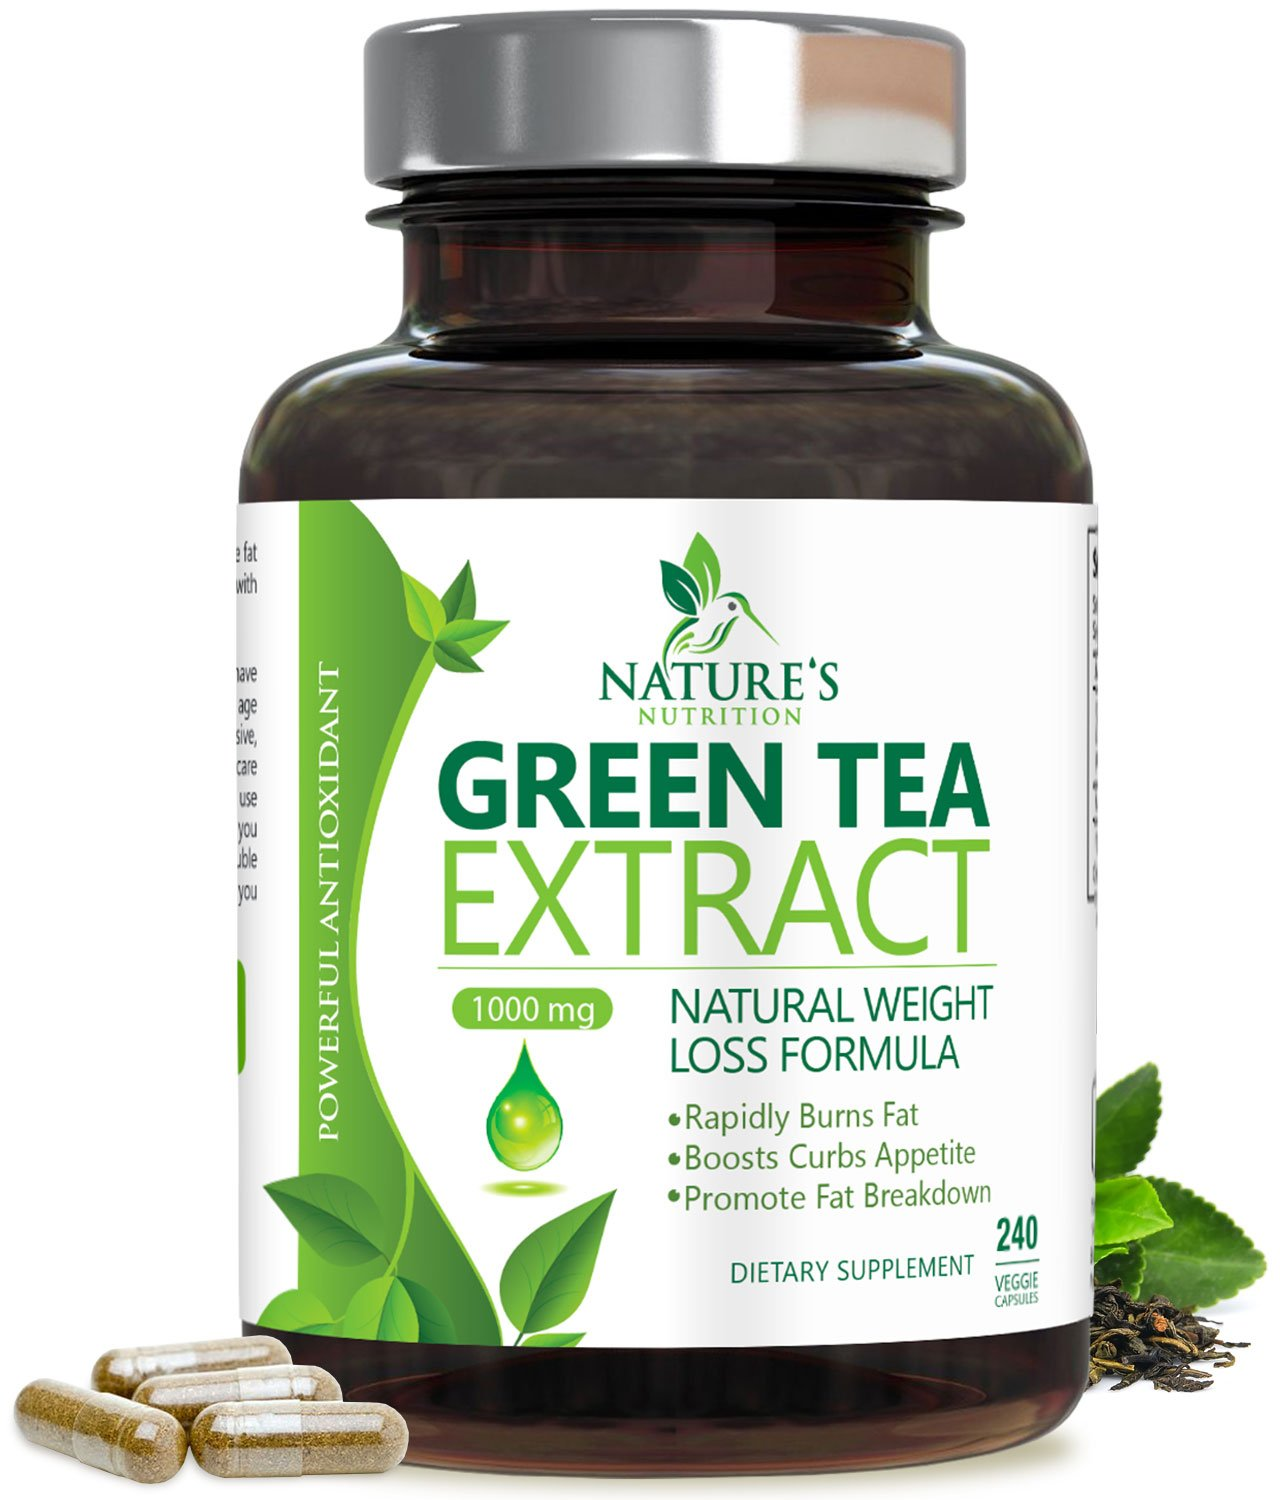 Green Tea Extract 98% with EGCG for Weight Loss 1000mg - Boost Metabolism for Healthy Heart - Antioxidants & Polyphenols for Immune System - Gentle Caffeine - Natural Fat Burner Pills - 240 Capsules